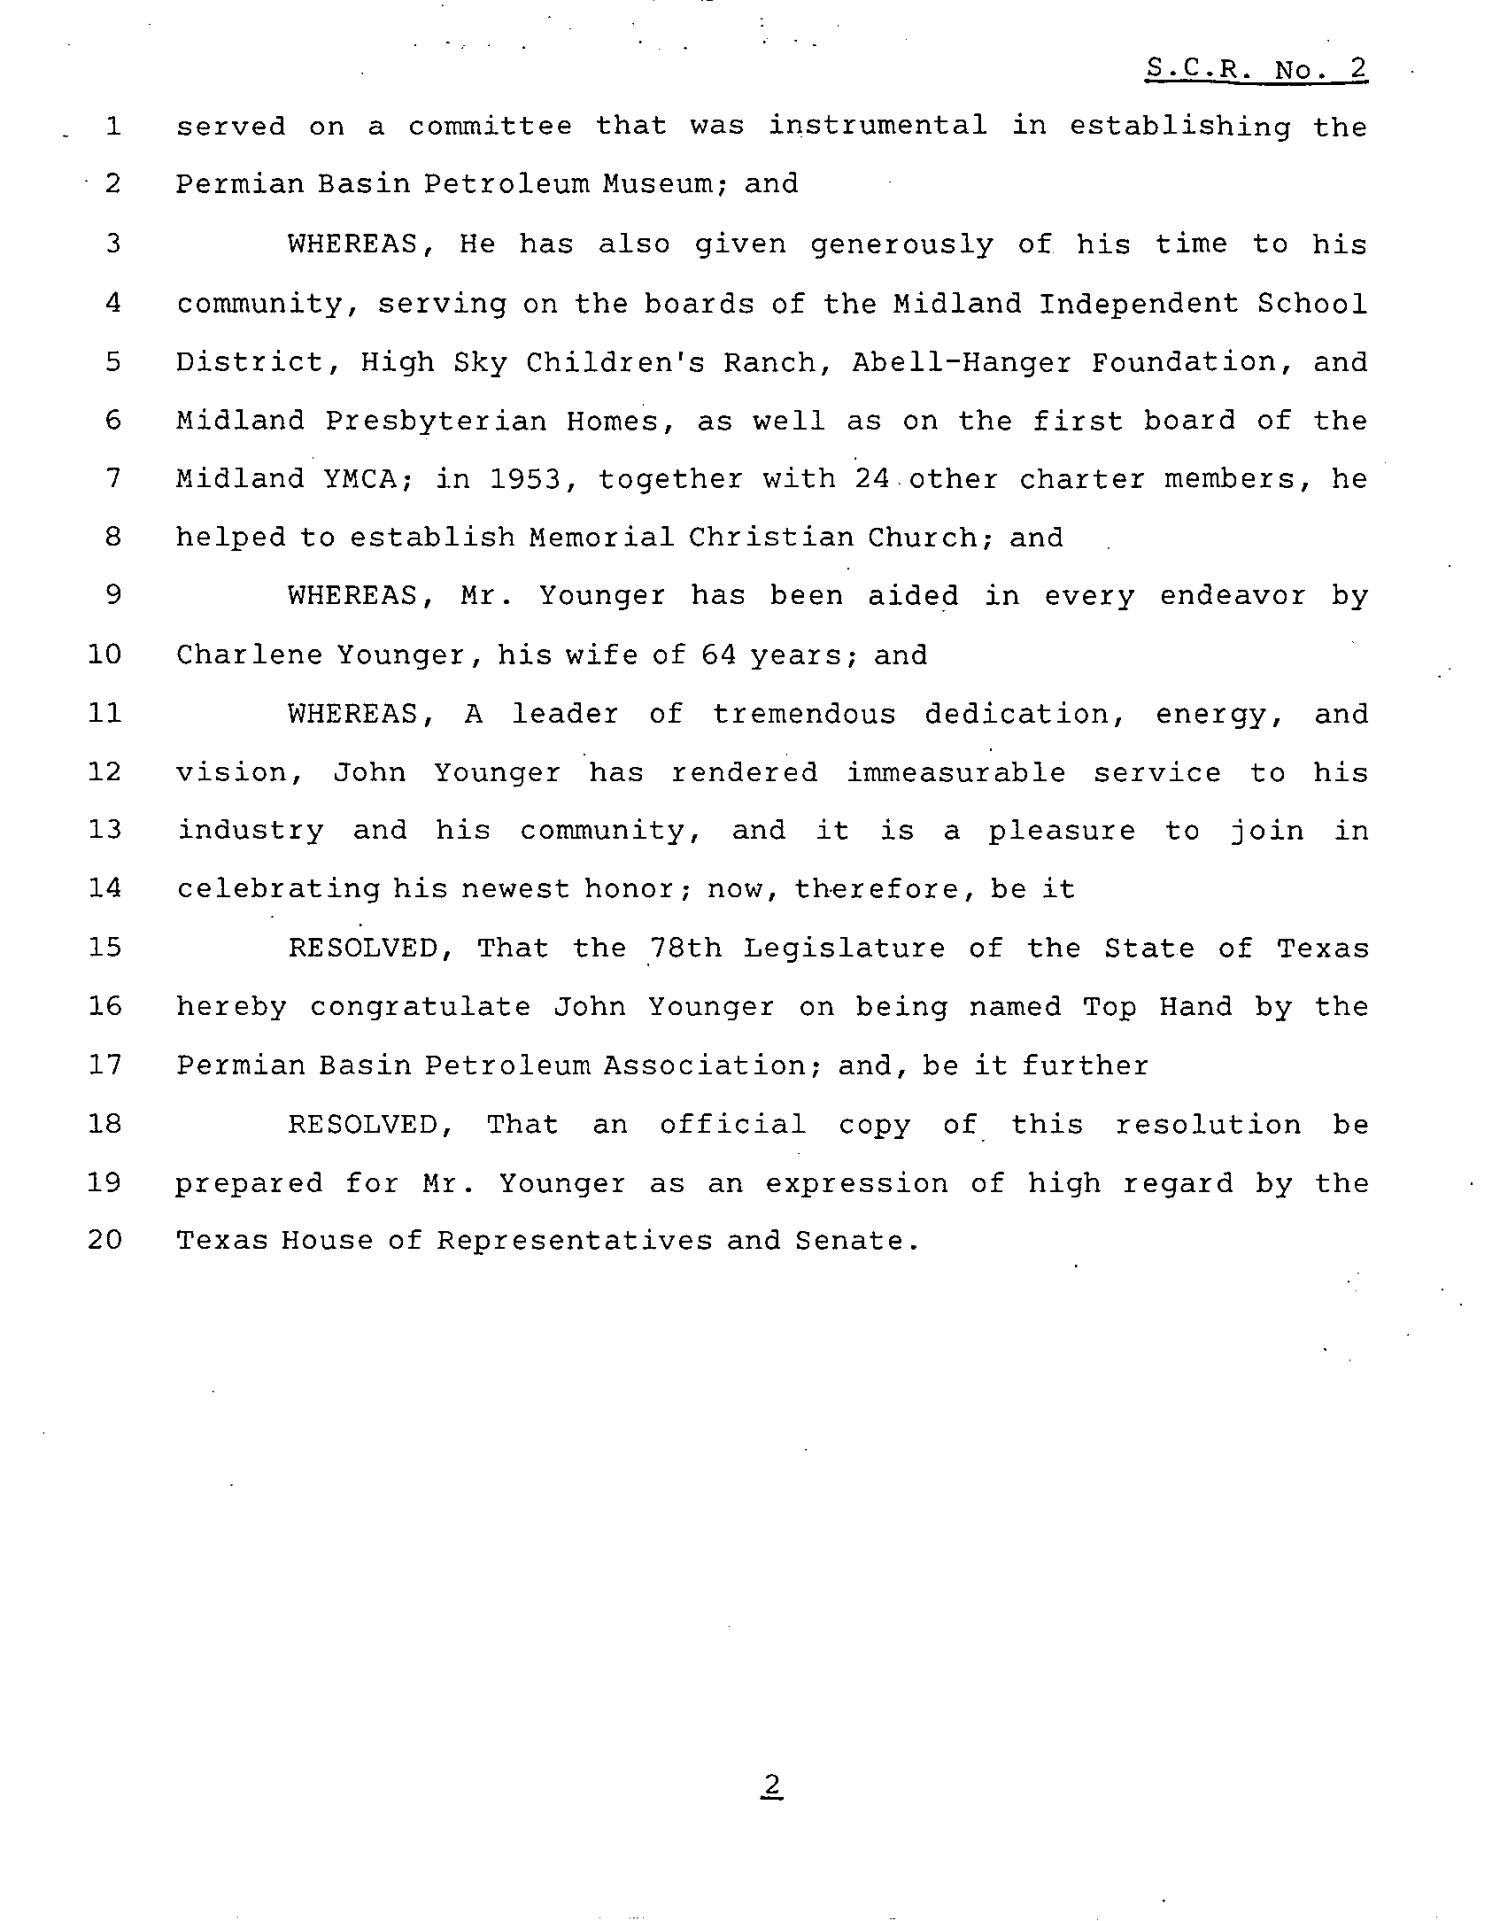 78th Texas Legislature, Regular Session, Senate Concurrent Resolution 2                                                                                                      [Sequence #]: 2 of 3